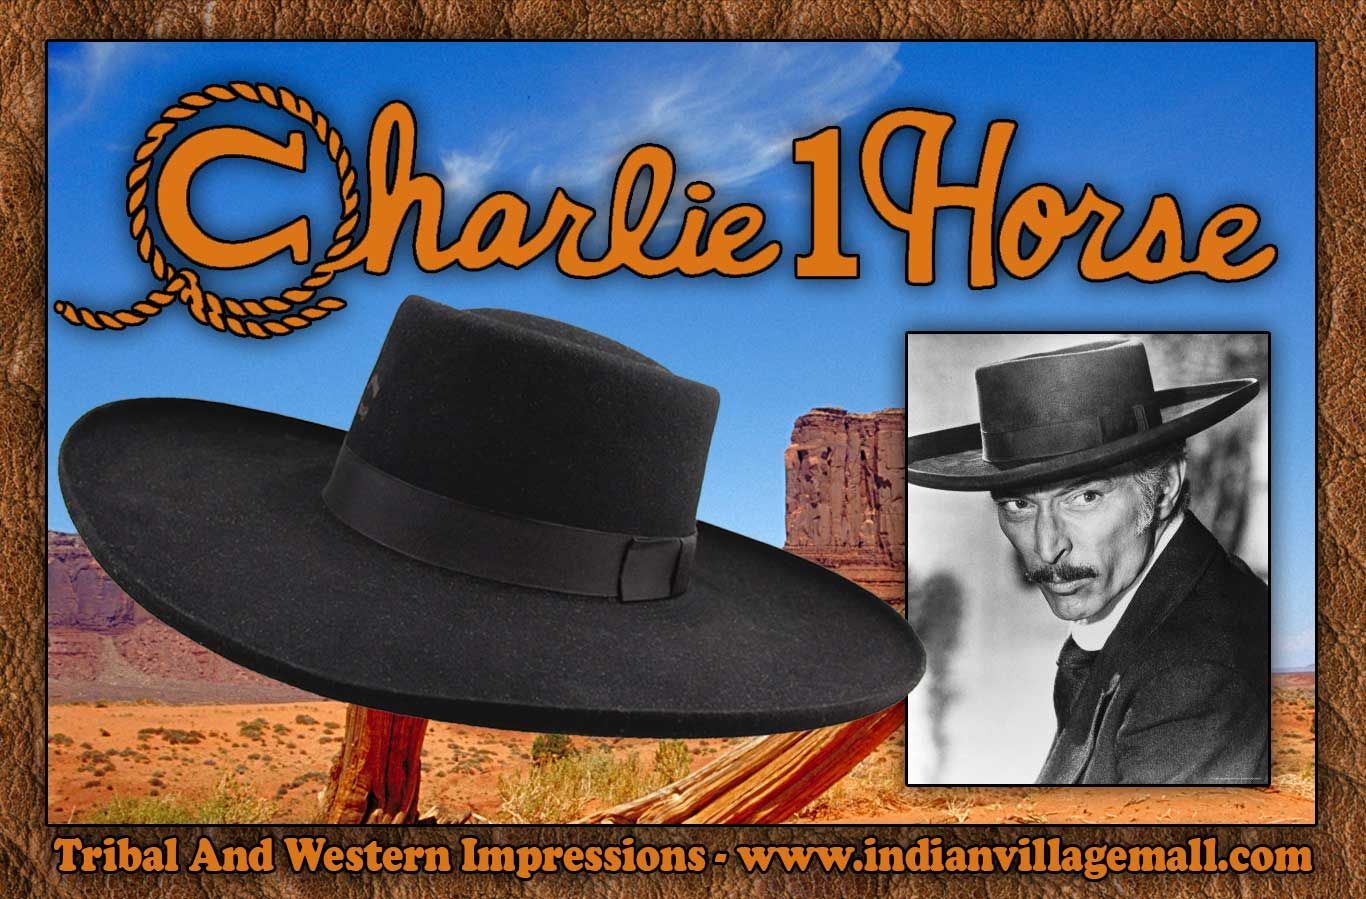 10X Tattoos   Scars Lee Van Cleef Sabata Charlie 1 Horse Western Cowboy Hat  From Tribal And Western Impressions - www.indianvillagemall.com 7130d8311b3